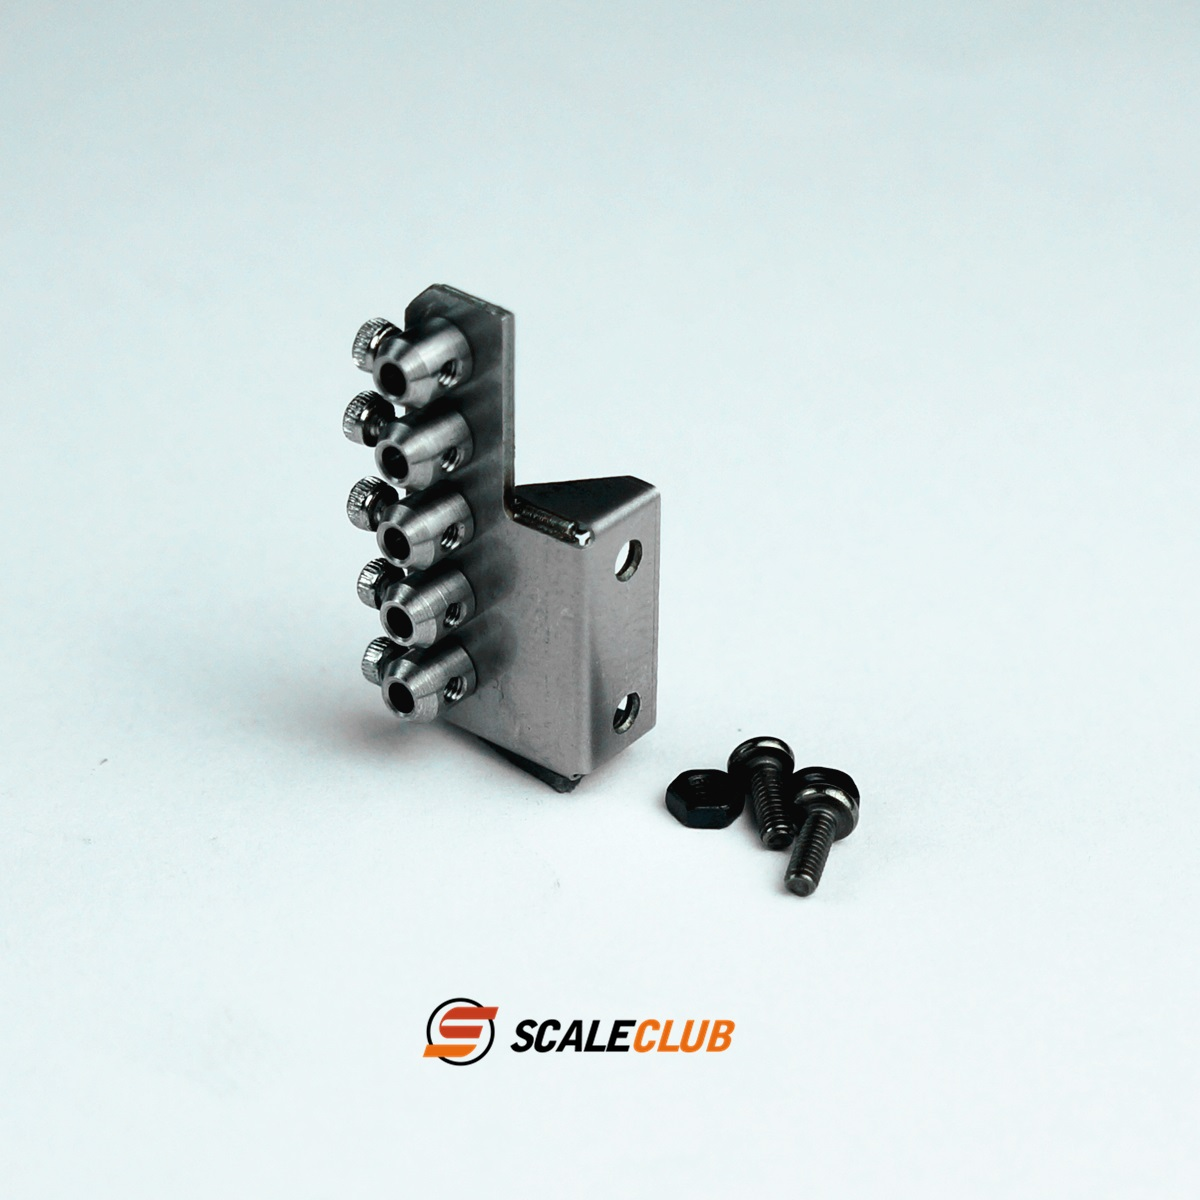 SCALECLUB  1/14 Universal  Lock differential fixed seat pull seat